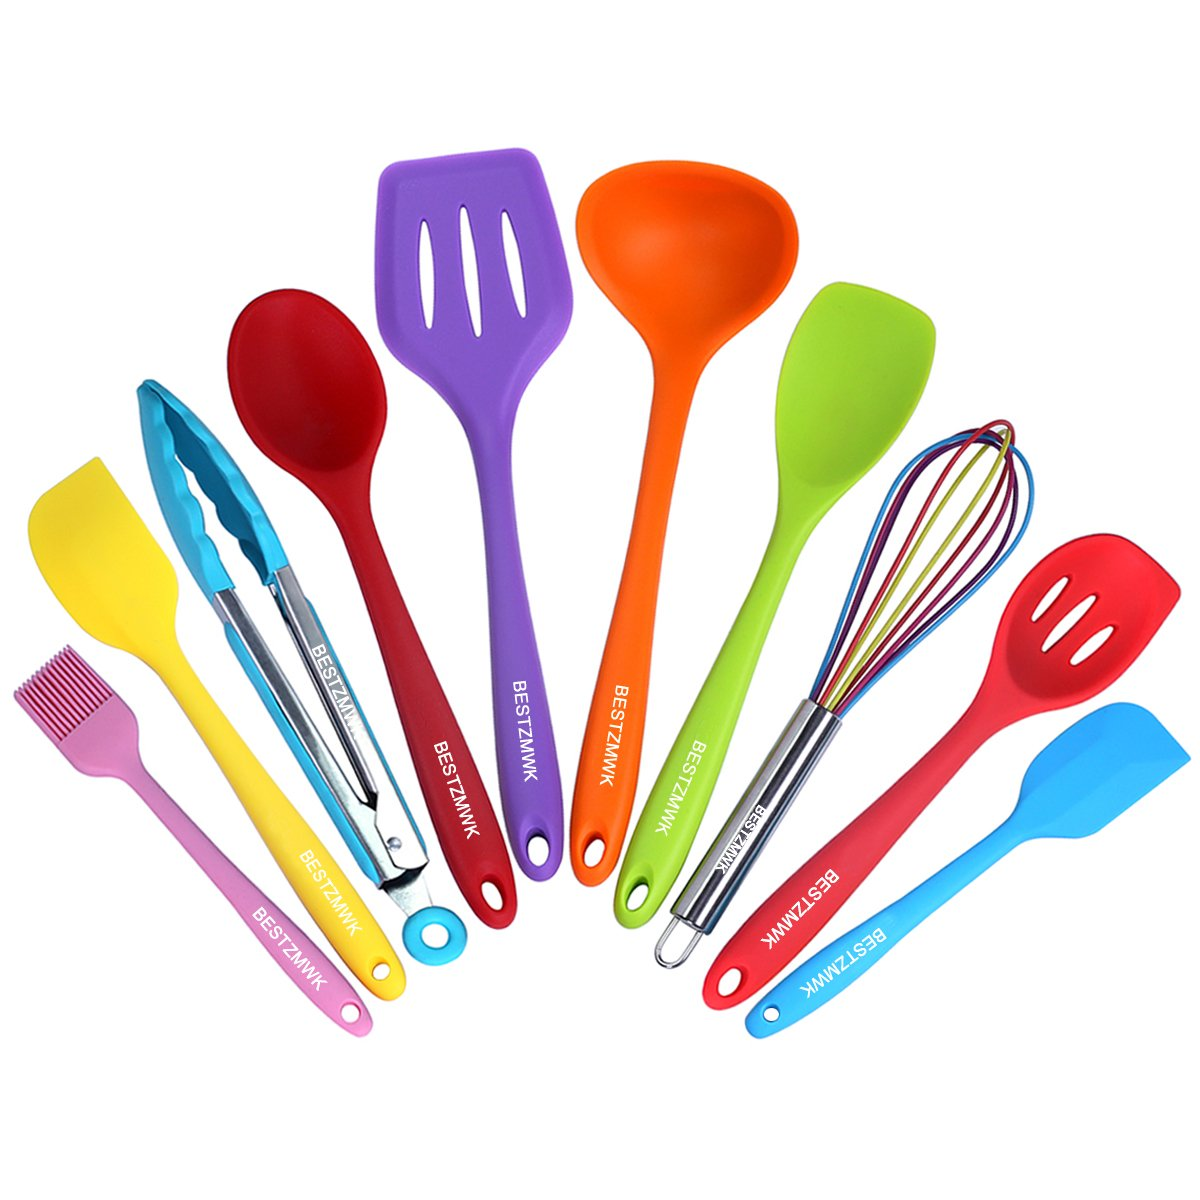 BESTZMWK Kitchen Utensil Set - 10 Cooking Utensils - Colorful Silicone Kitchen Utensils - Nonstick Cookware with Spatula Set - Colored Best Kitchen Tools Kitchen Gadgets